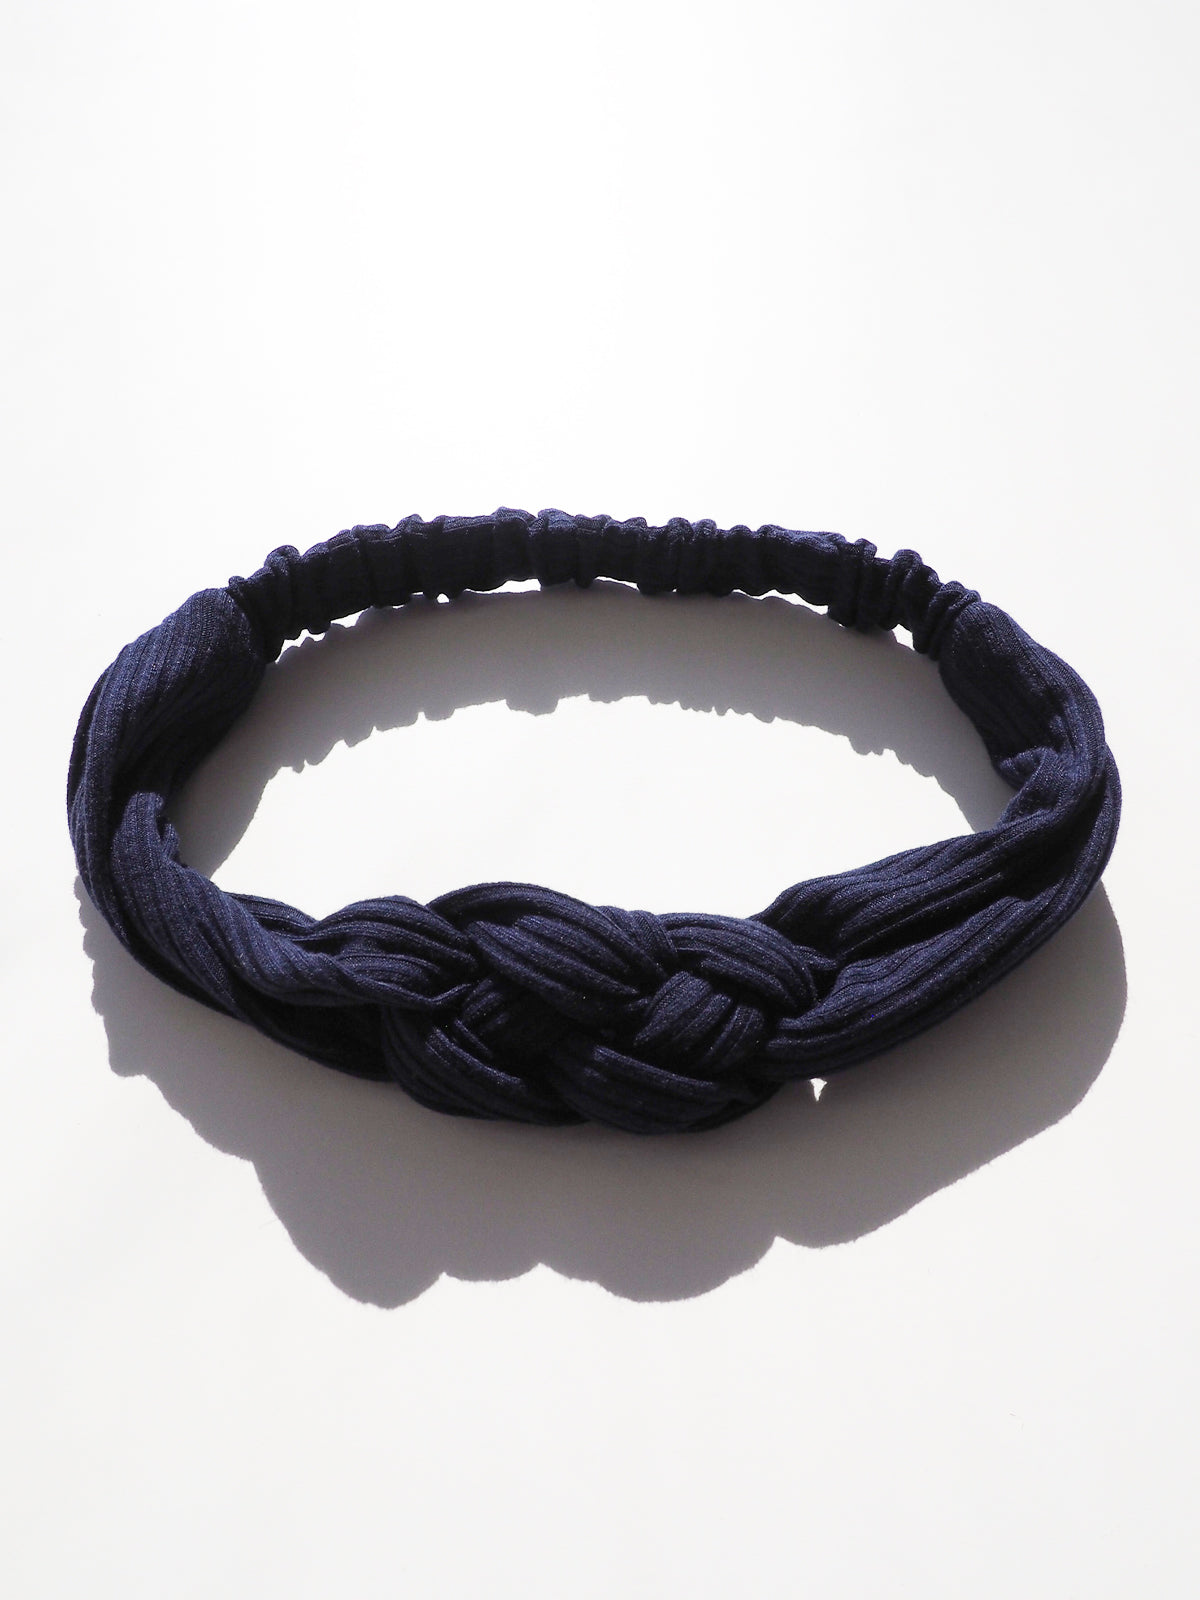 EVERYDAY GLAMOUR HEADBAND - NAVY